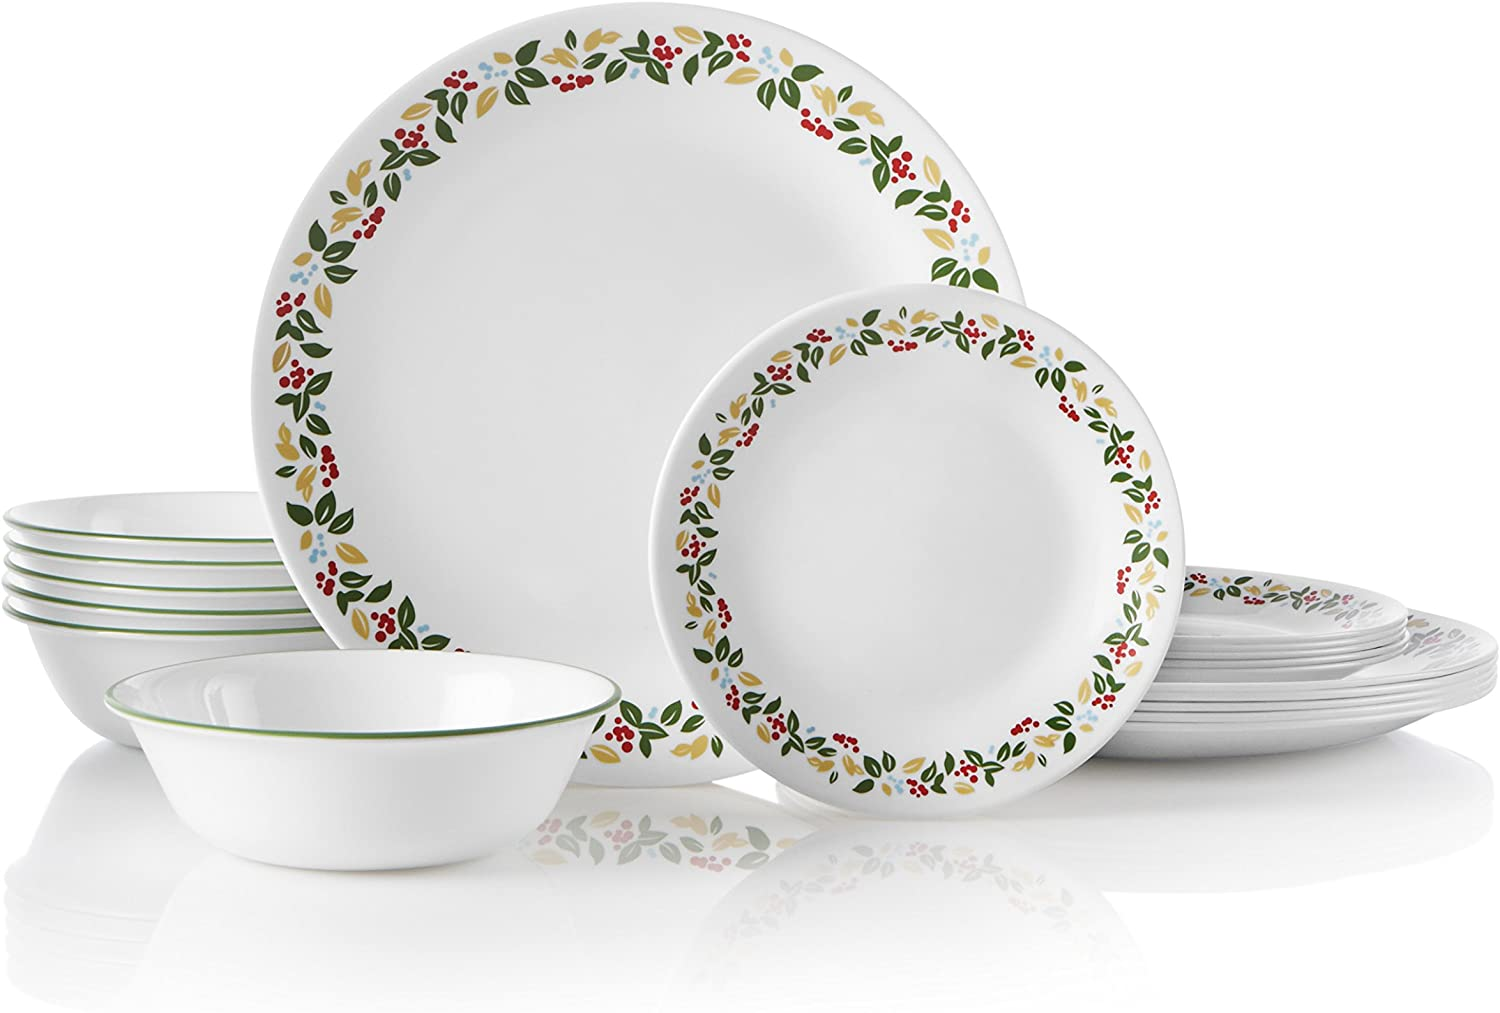 Corelle Service for 6, Chip Resistant, Holiday Berries dinnerware sets, 18-piece